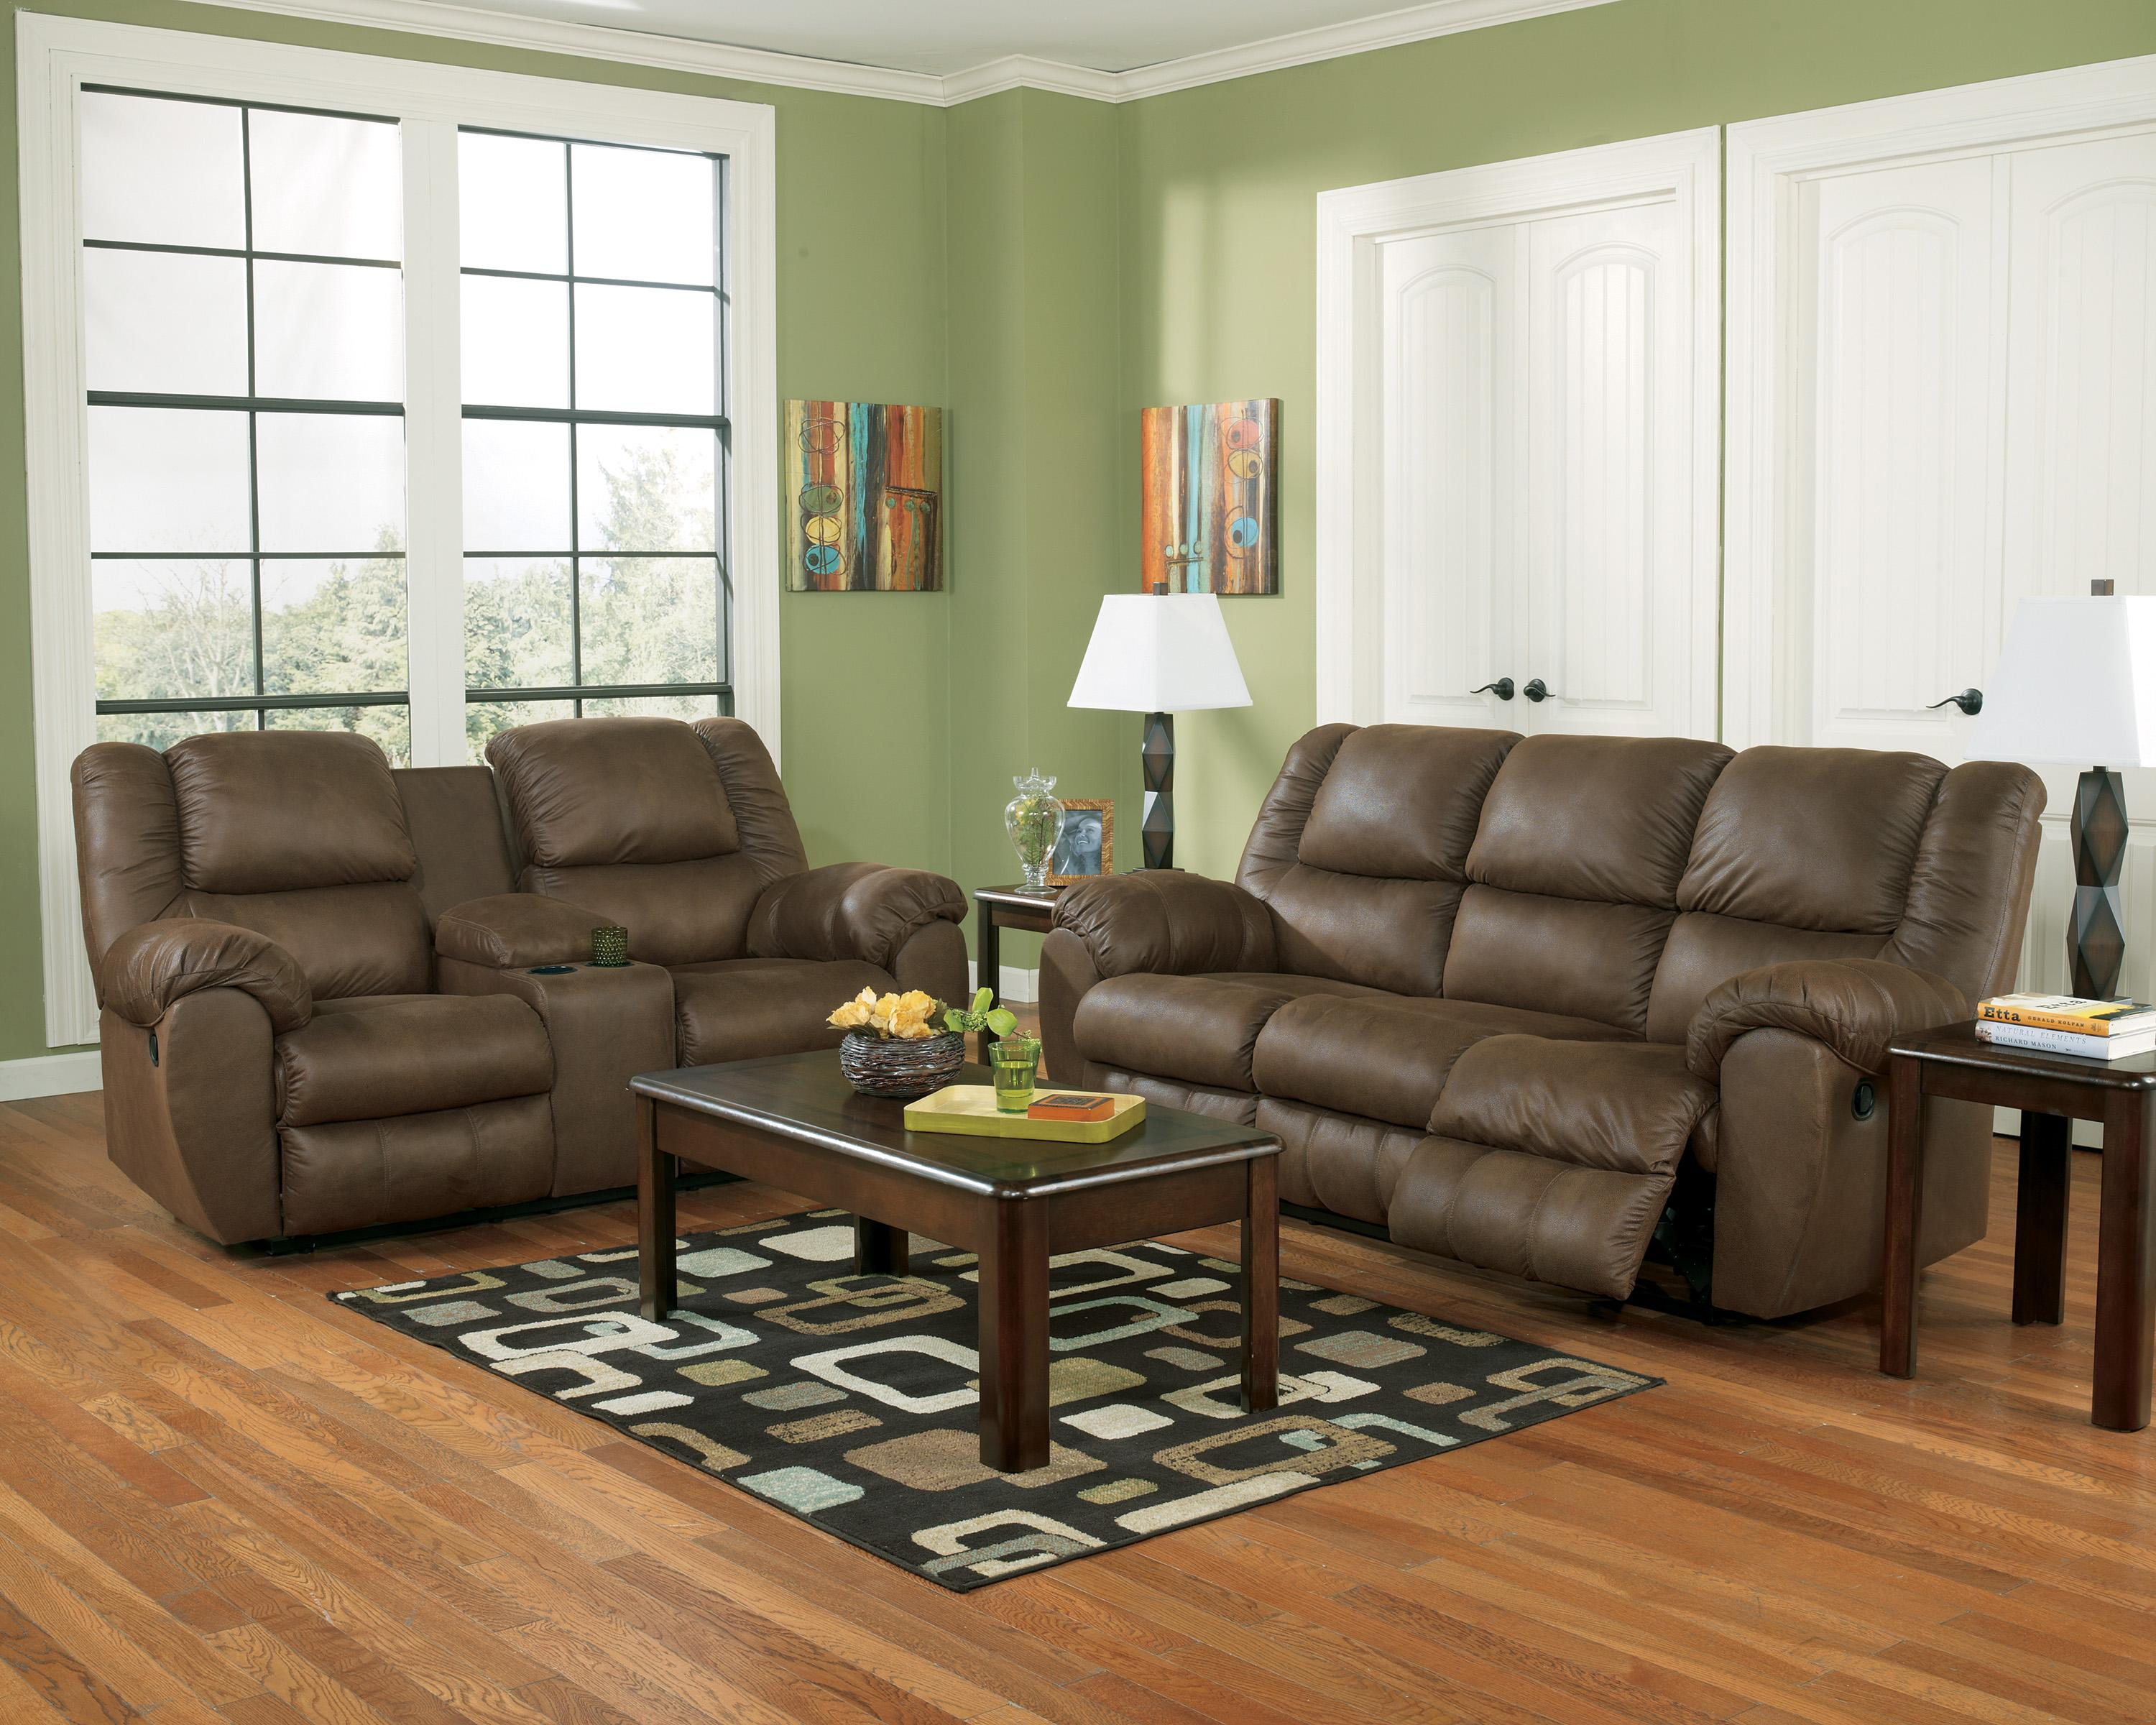 Benchcraft Quarterback - Canyon Reclining Living Room Group - Item Number: 32701 Living Room Group 1